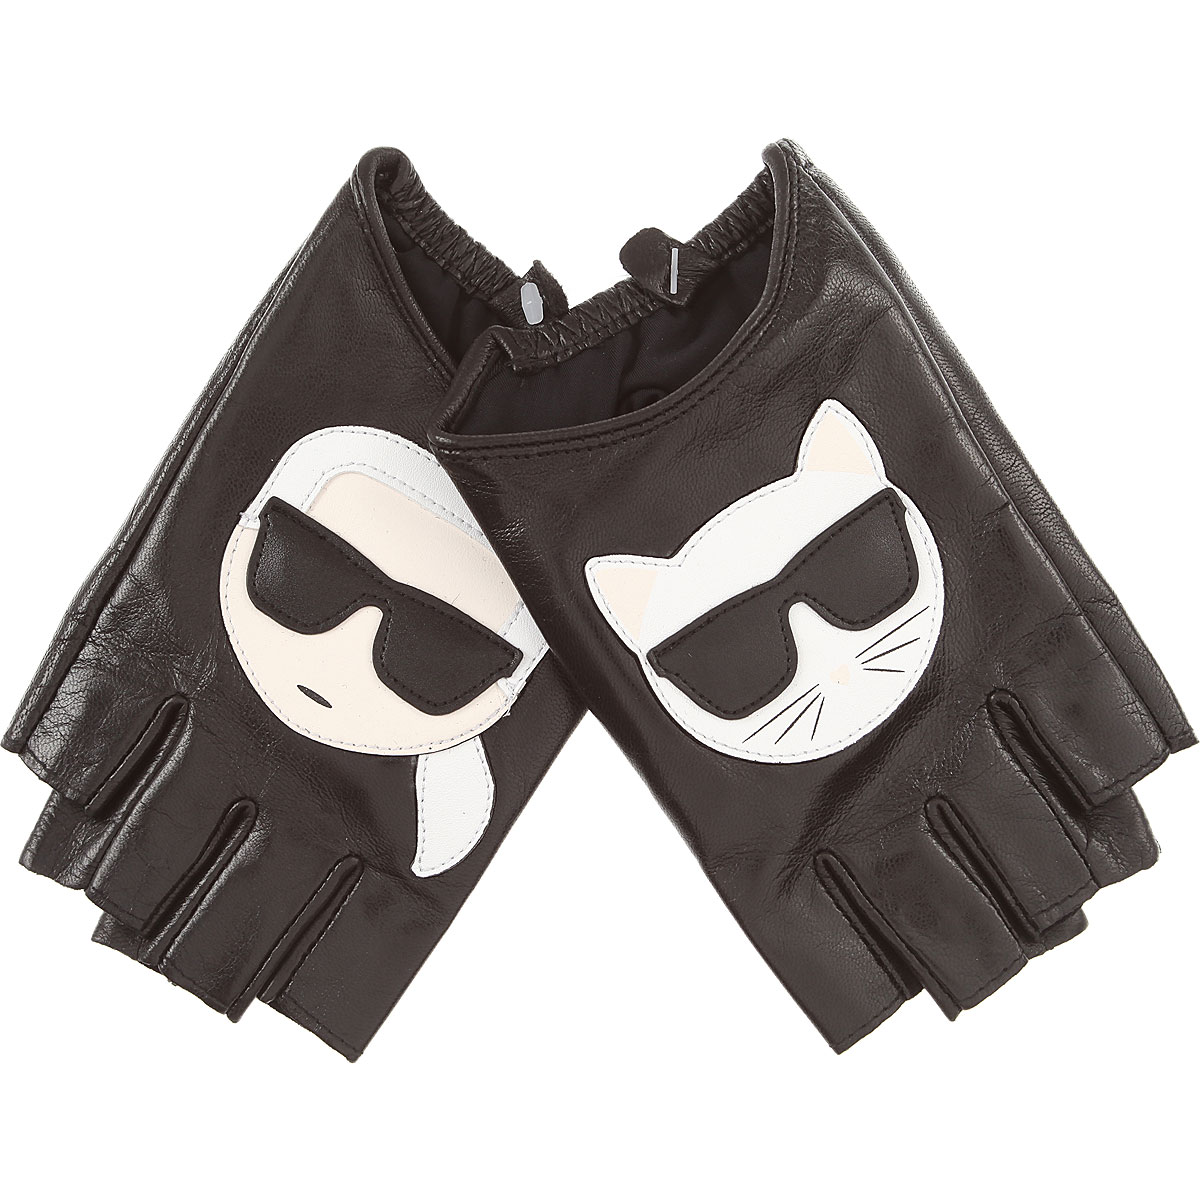 Image of Karl Lagerfeld Gloves for Women, Black, Leather, 2017, S/M M/L